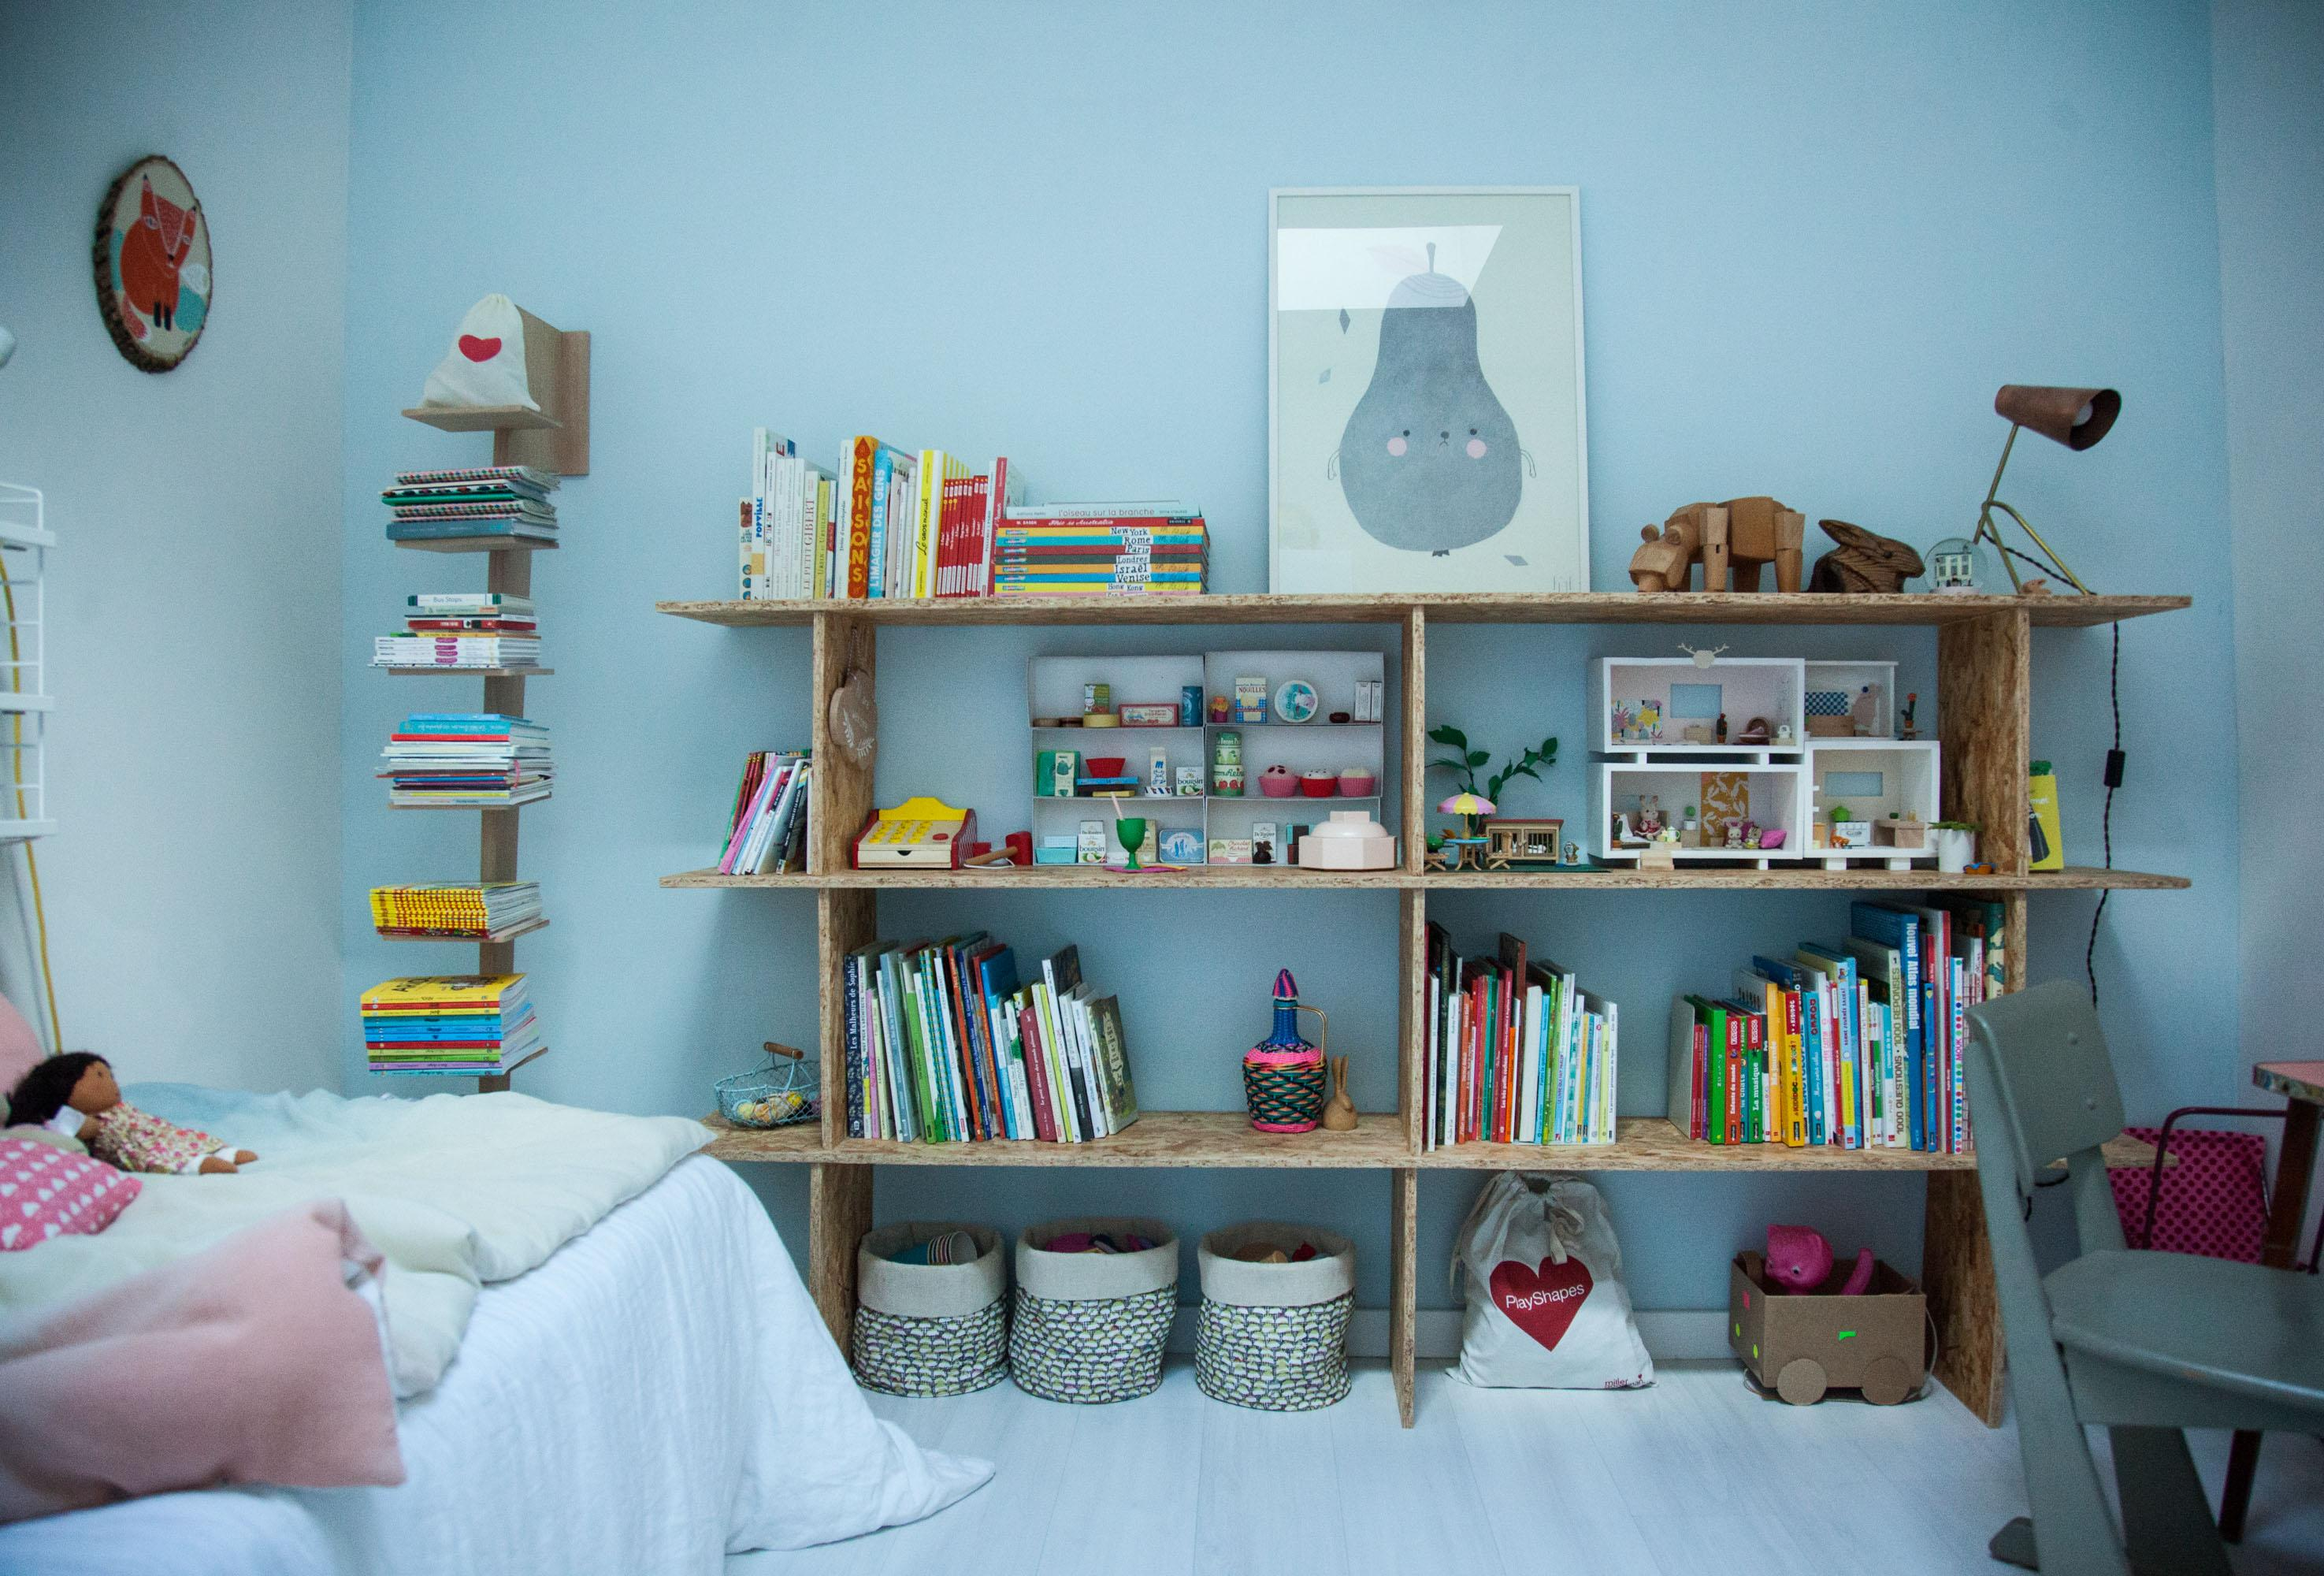 Child's Bedroom of Lou, 6 years old #5